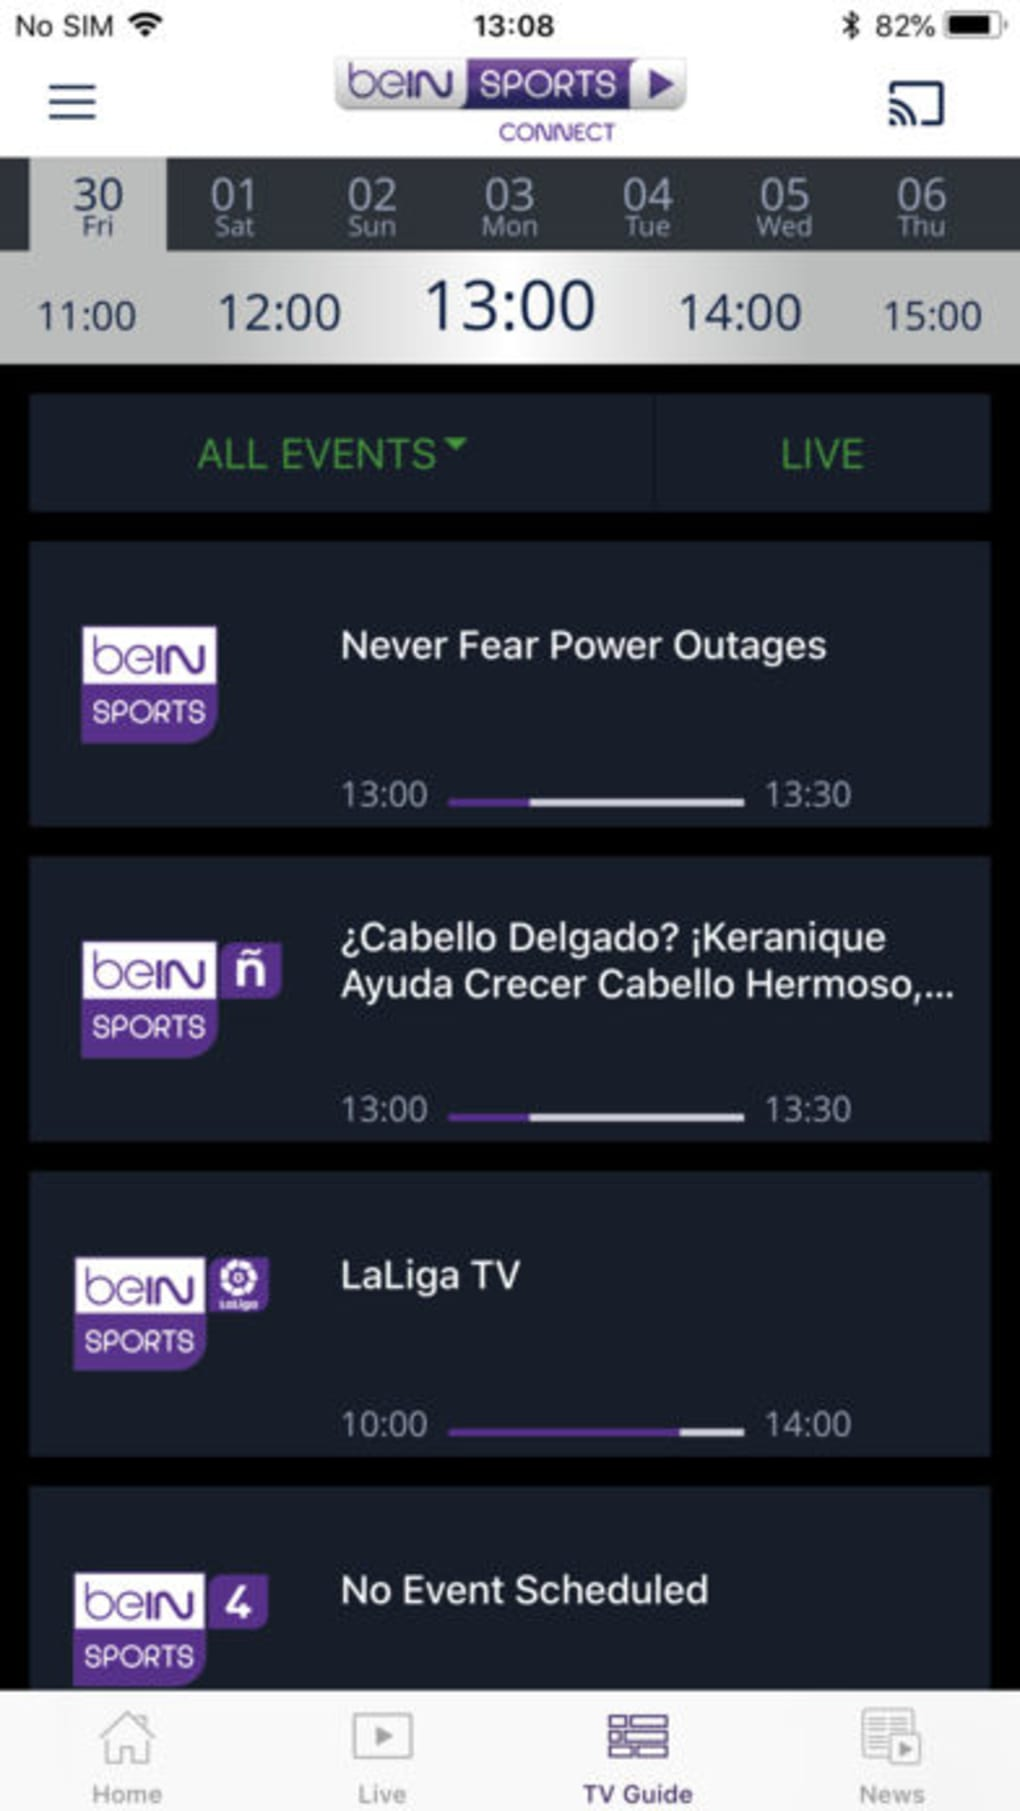 beIN SPORTS CONNECT for iPhone - Download